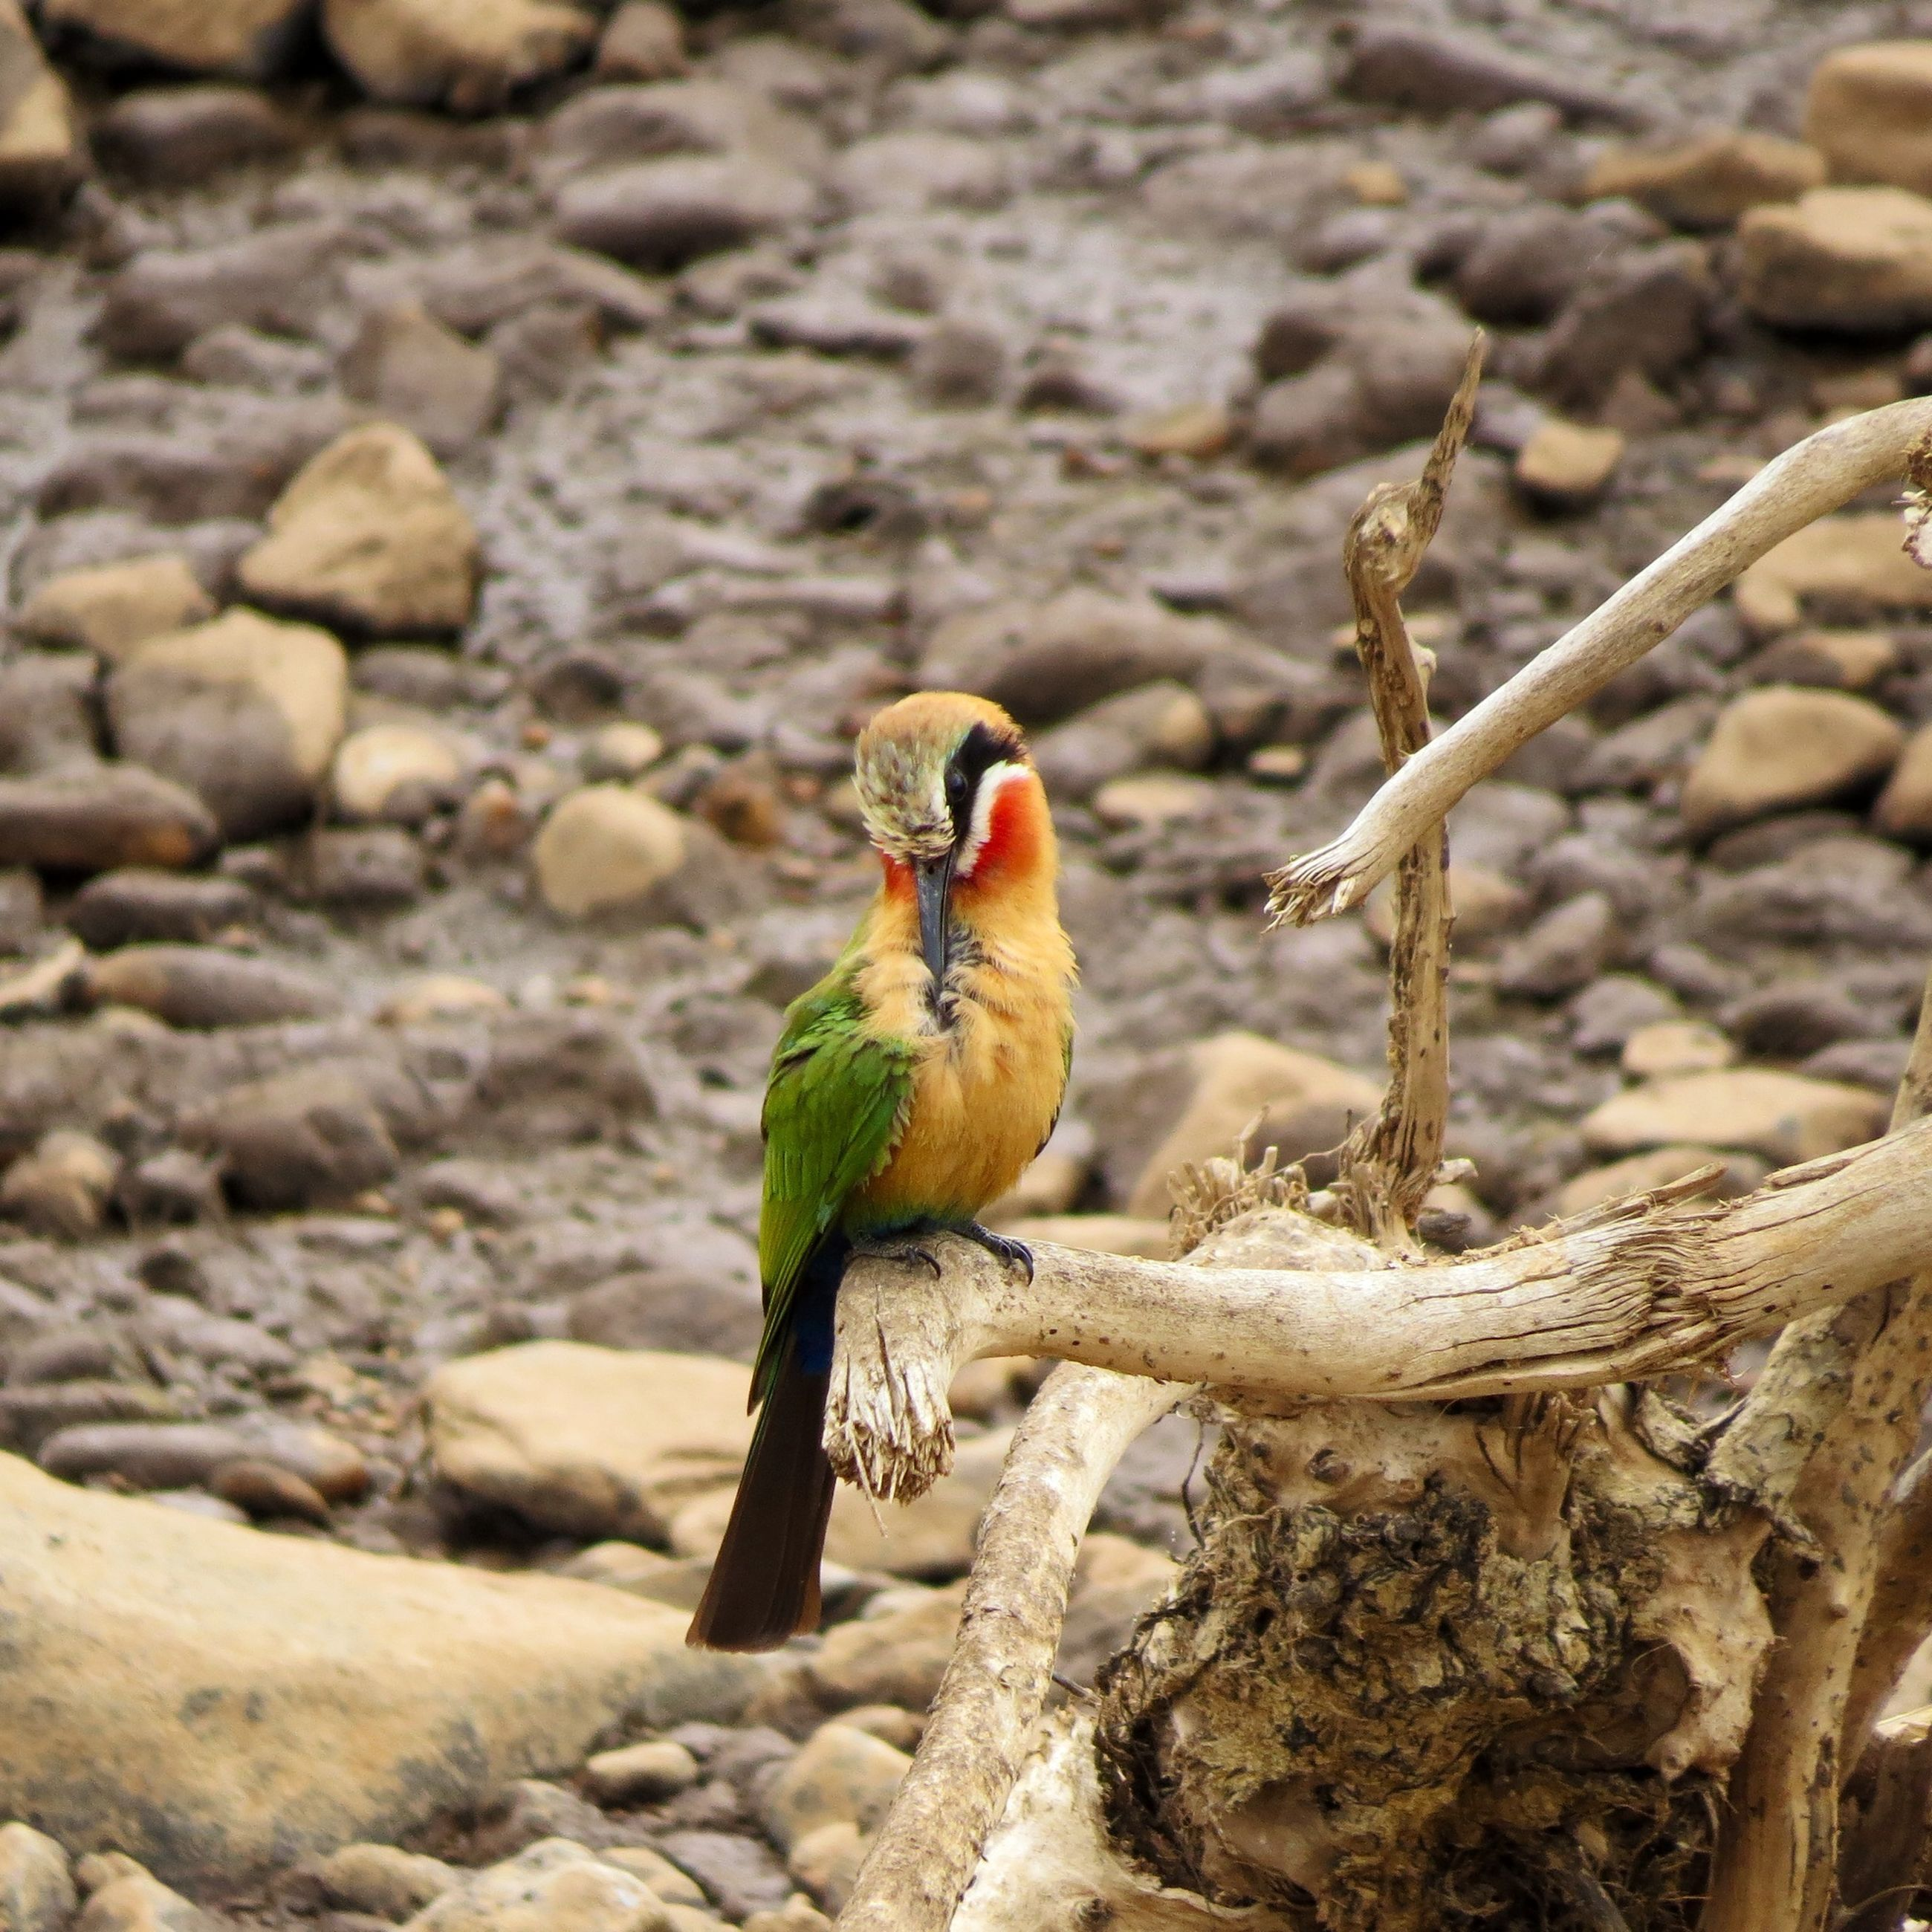 animal themes, bird, animals in the wild, one animal, wildlife, perching, focus on foreground, full length, nature, beak, close-up, outdoors, day, rock - object, looking away, branch, no people, zoology, selective focus, side view